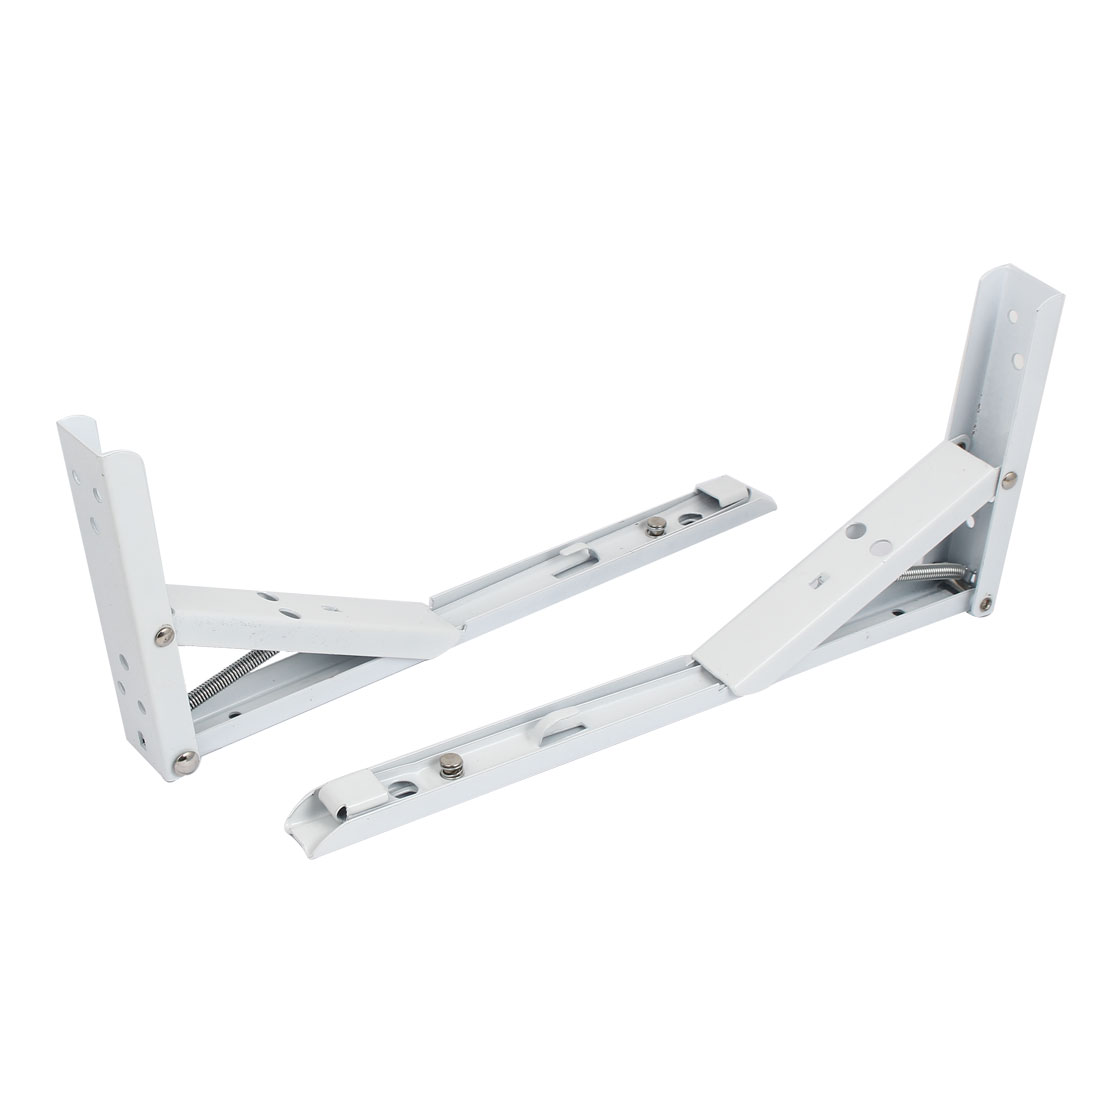 "2pcs 90 Degree Projector Wall Mount Folding Support Shelf Bracket 12"" x 5"""